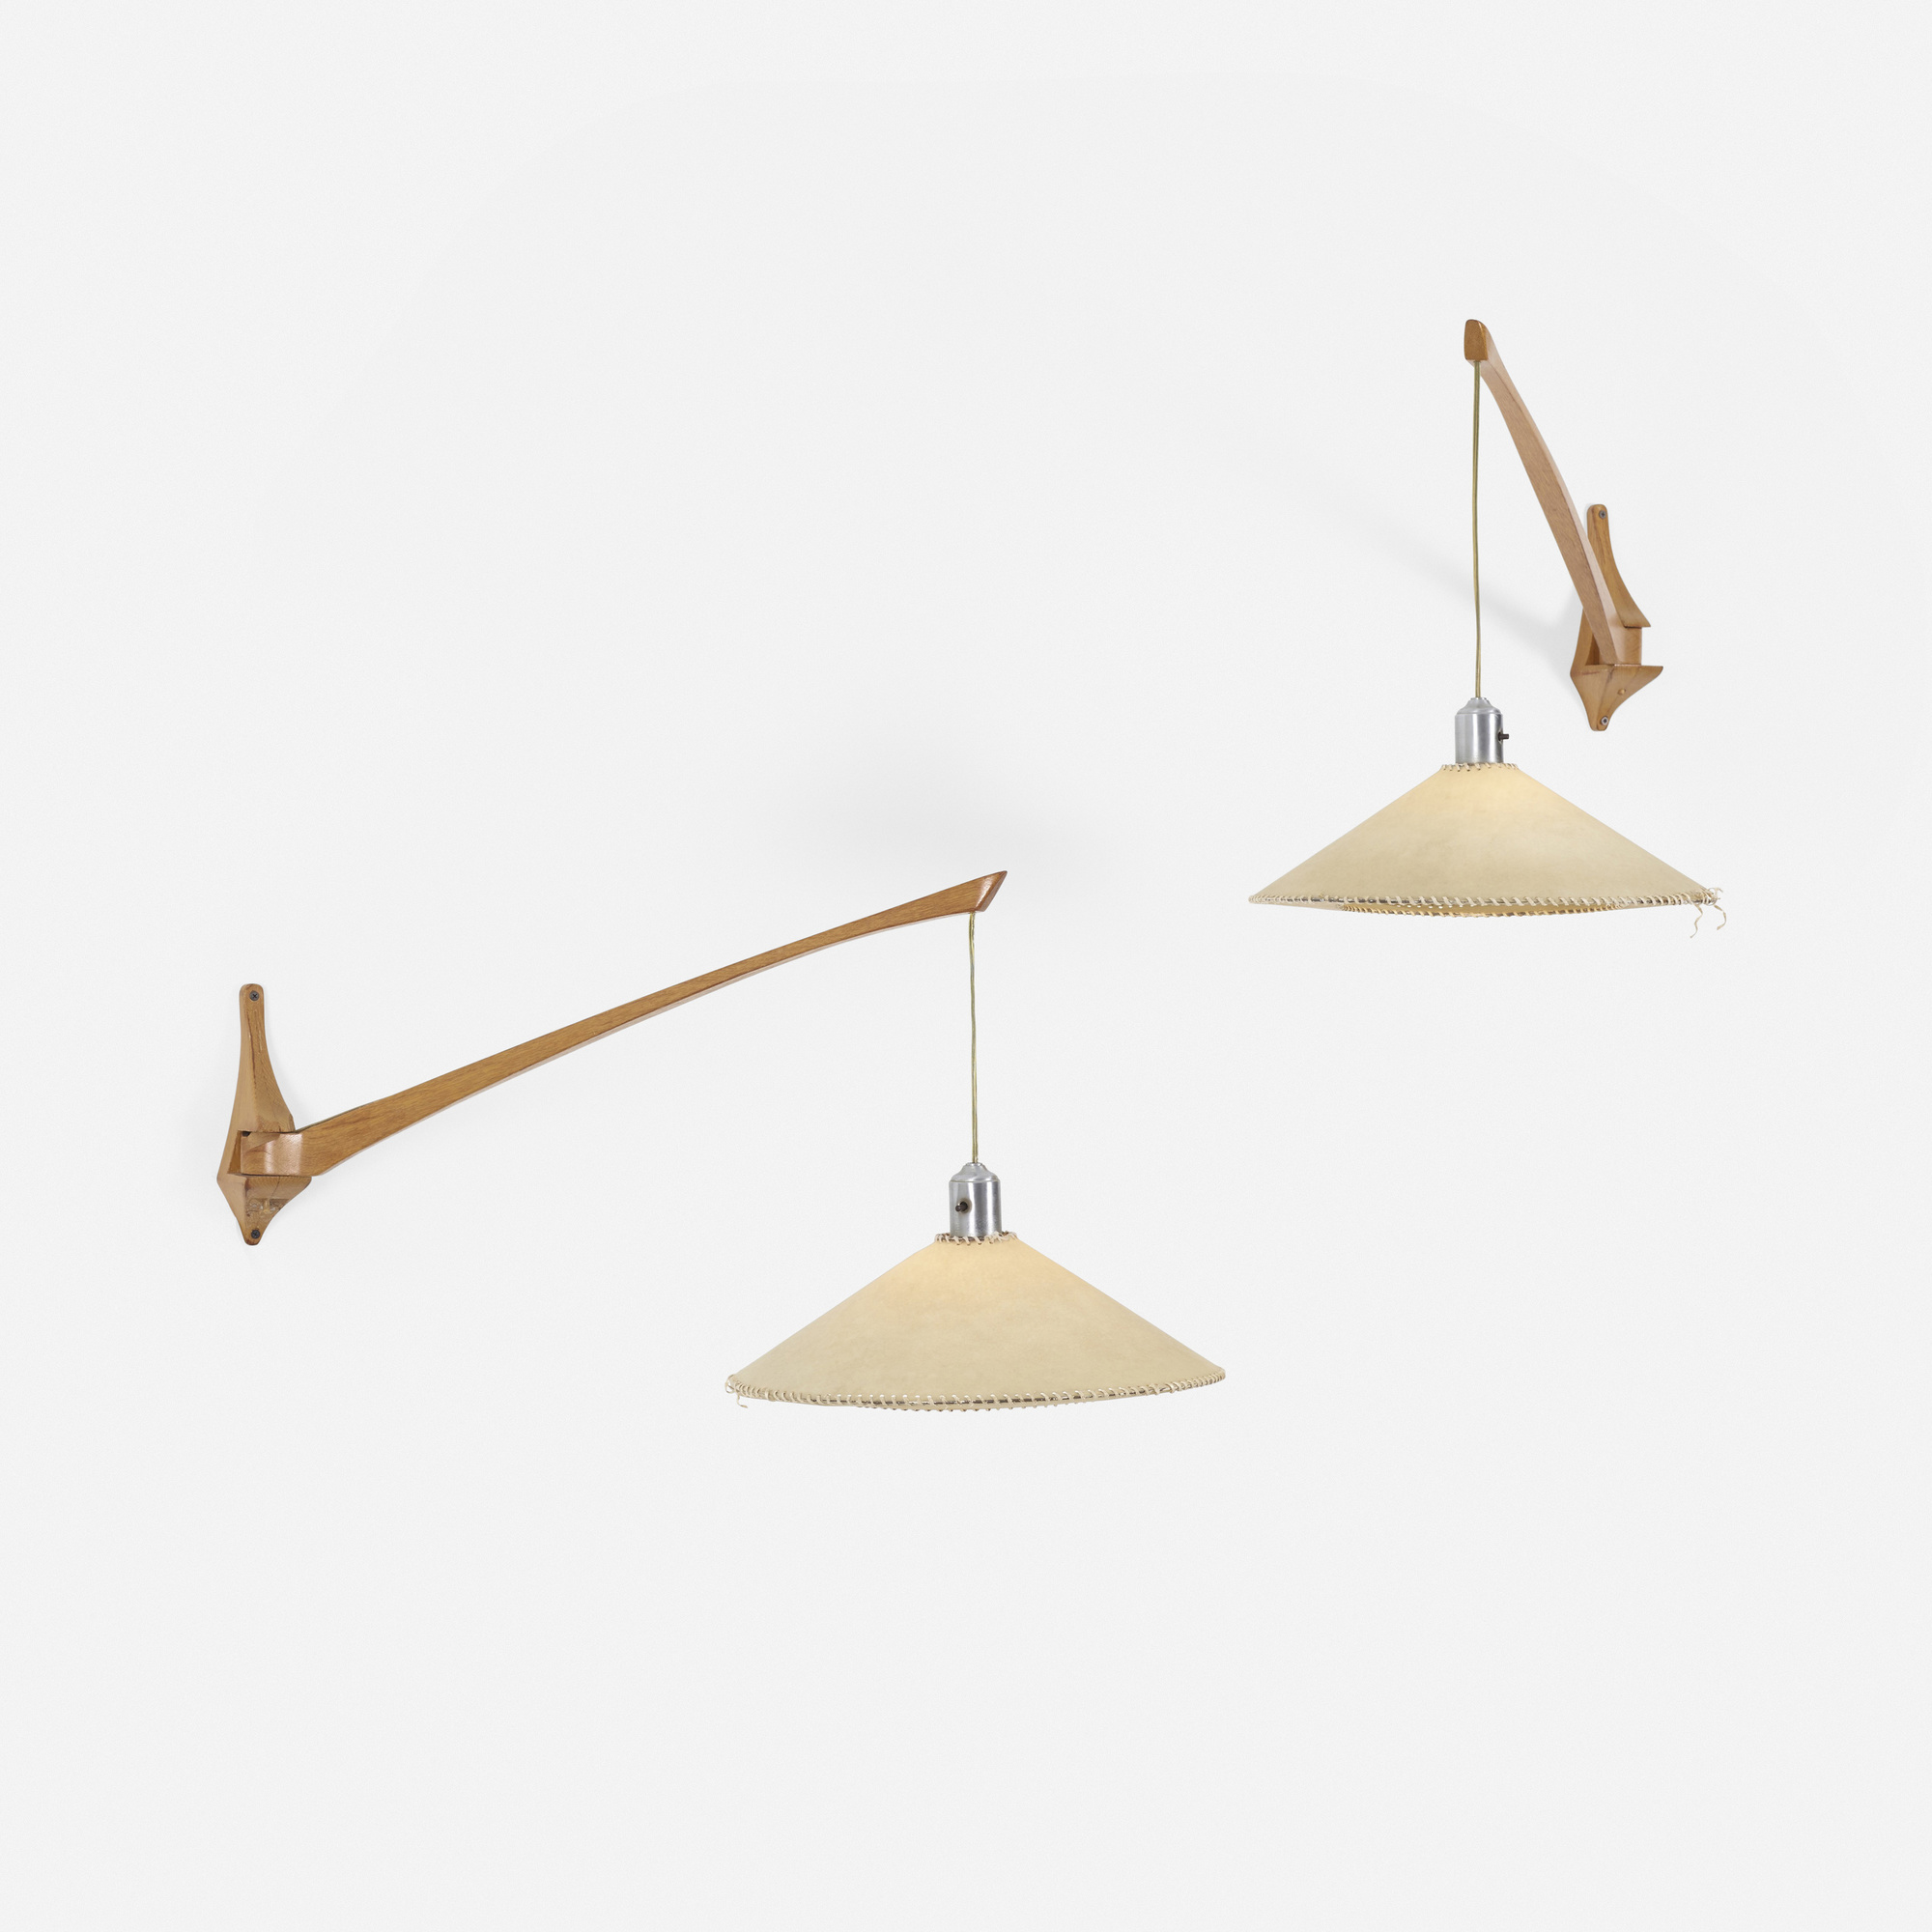 230: Danish / wall-mounted lamps, pair (2 of 2)